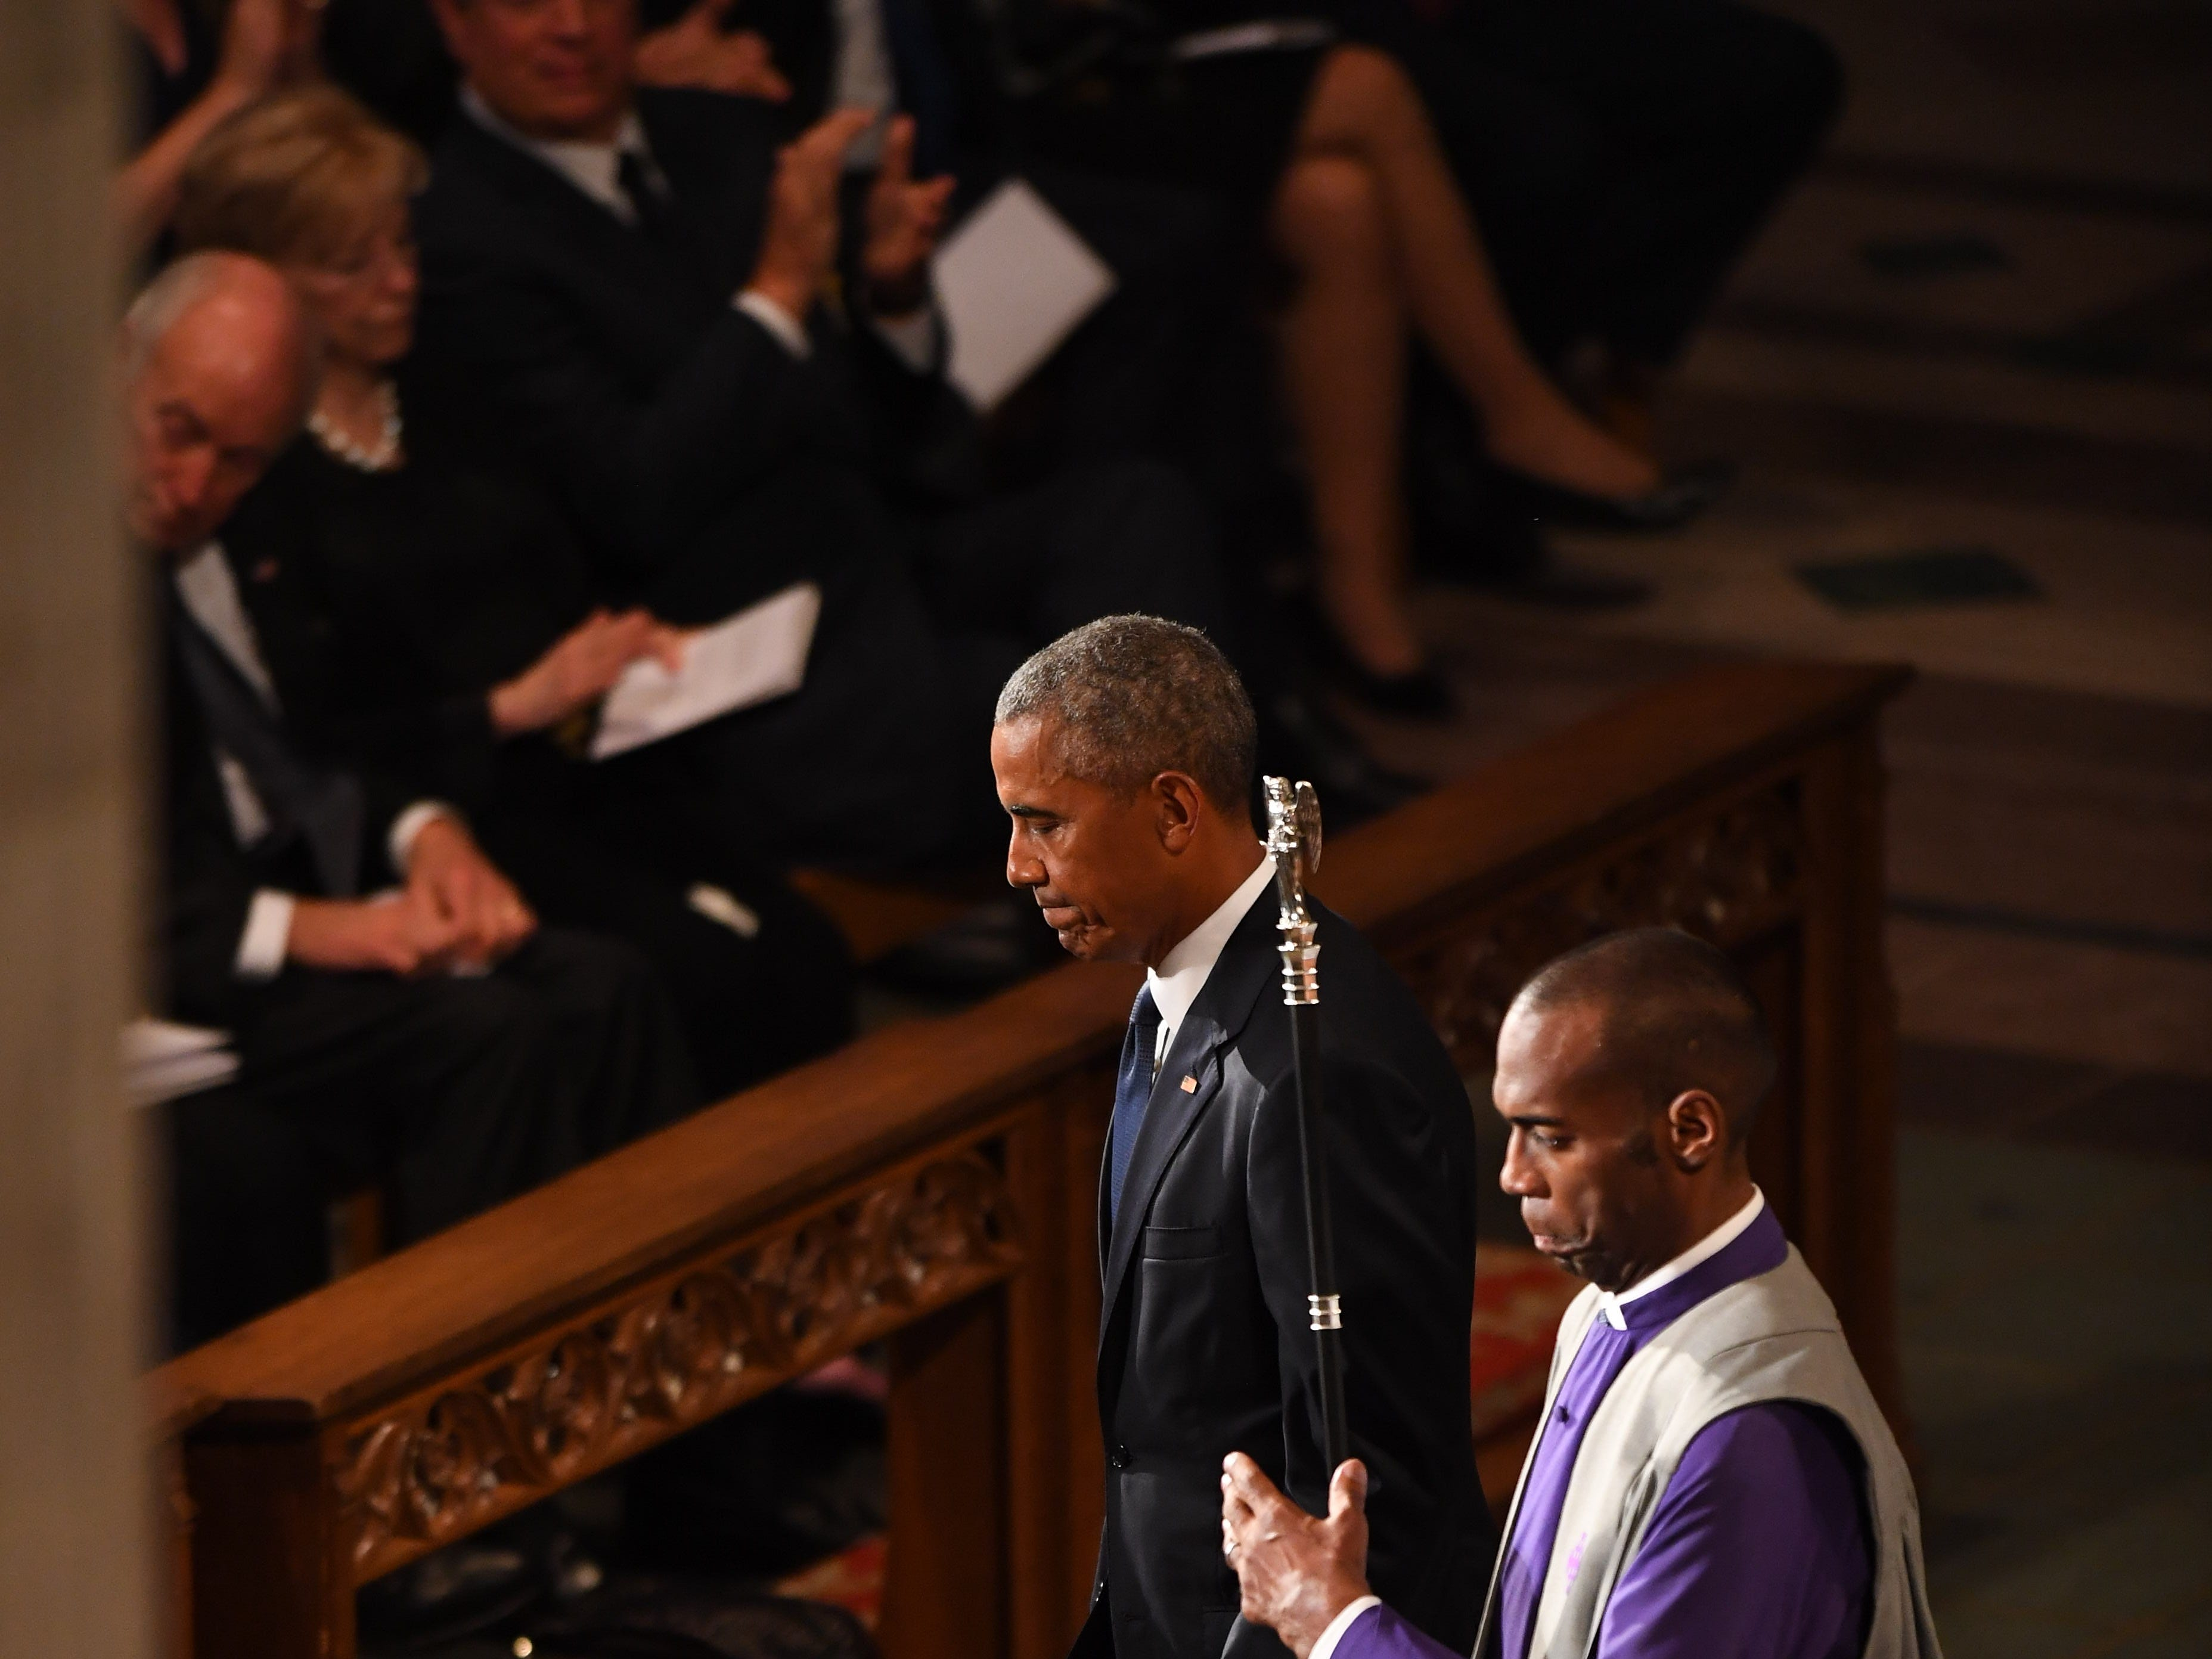 Former President Barack Obama is ushered back to his seat after his words at the memorial service for John McCain.